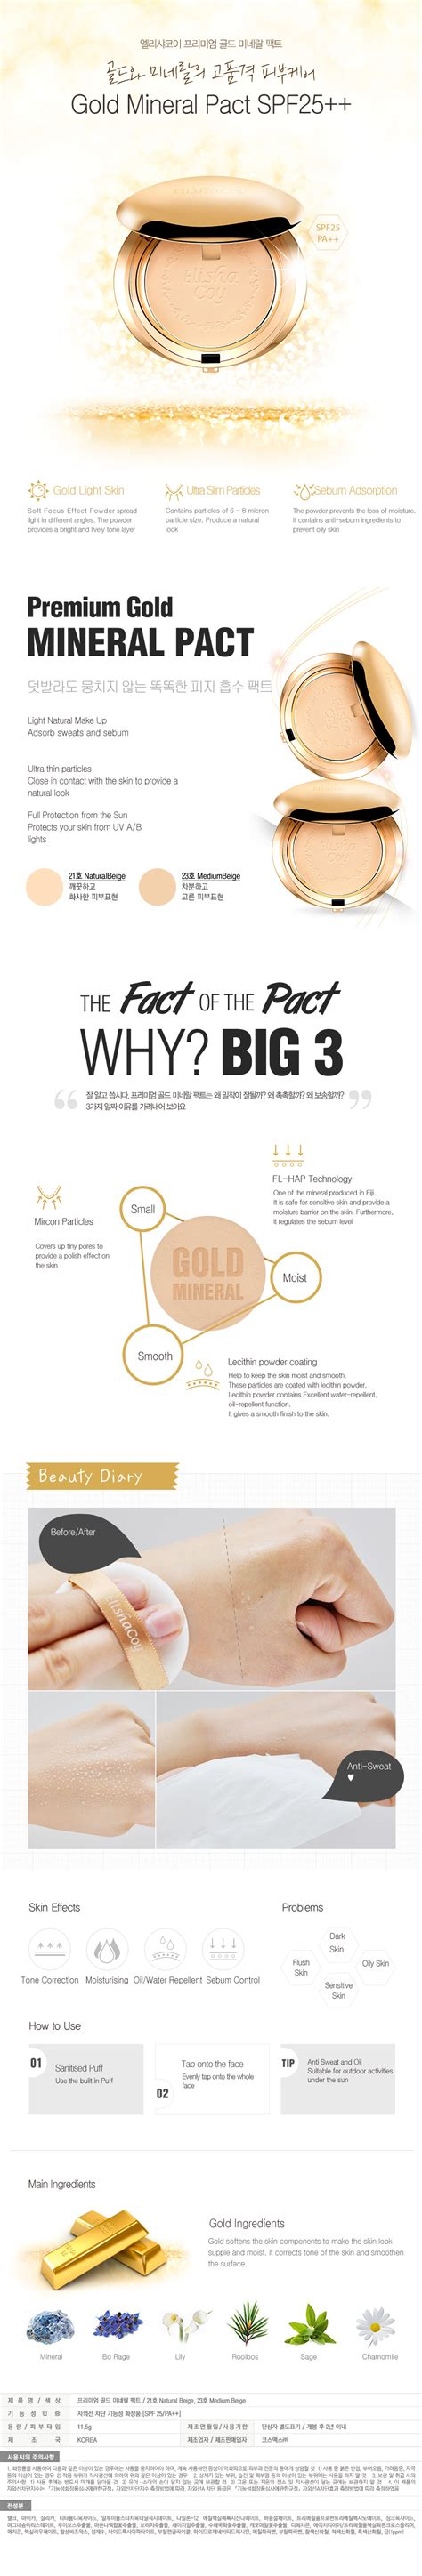 Premium Gold Mineral Pact happybeauty premium gold mineral pact 23